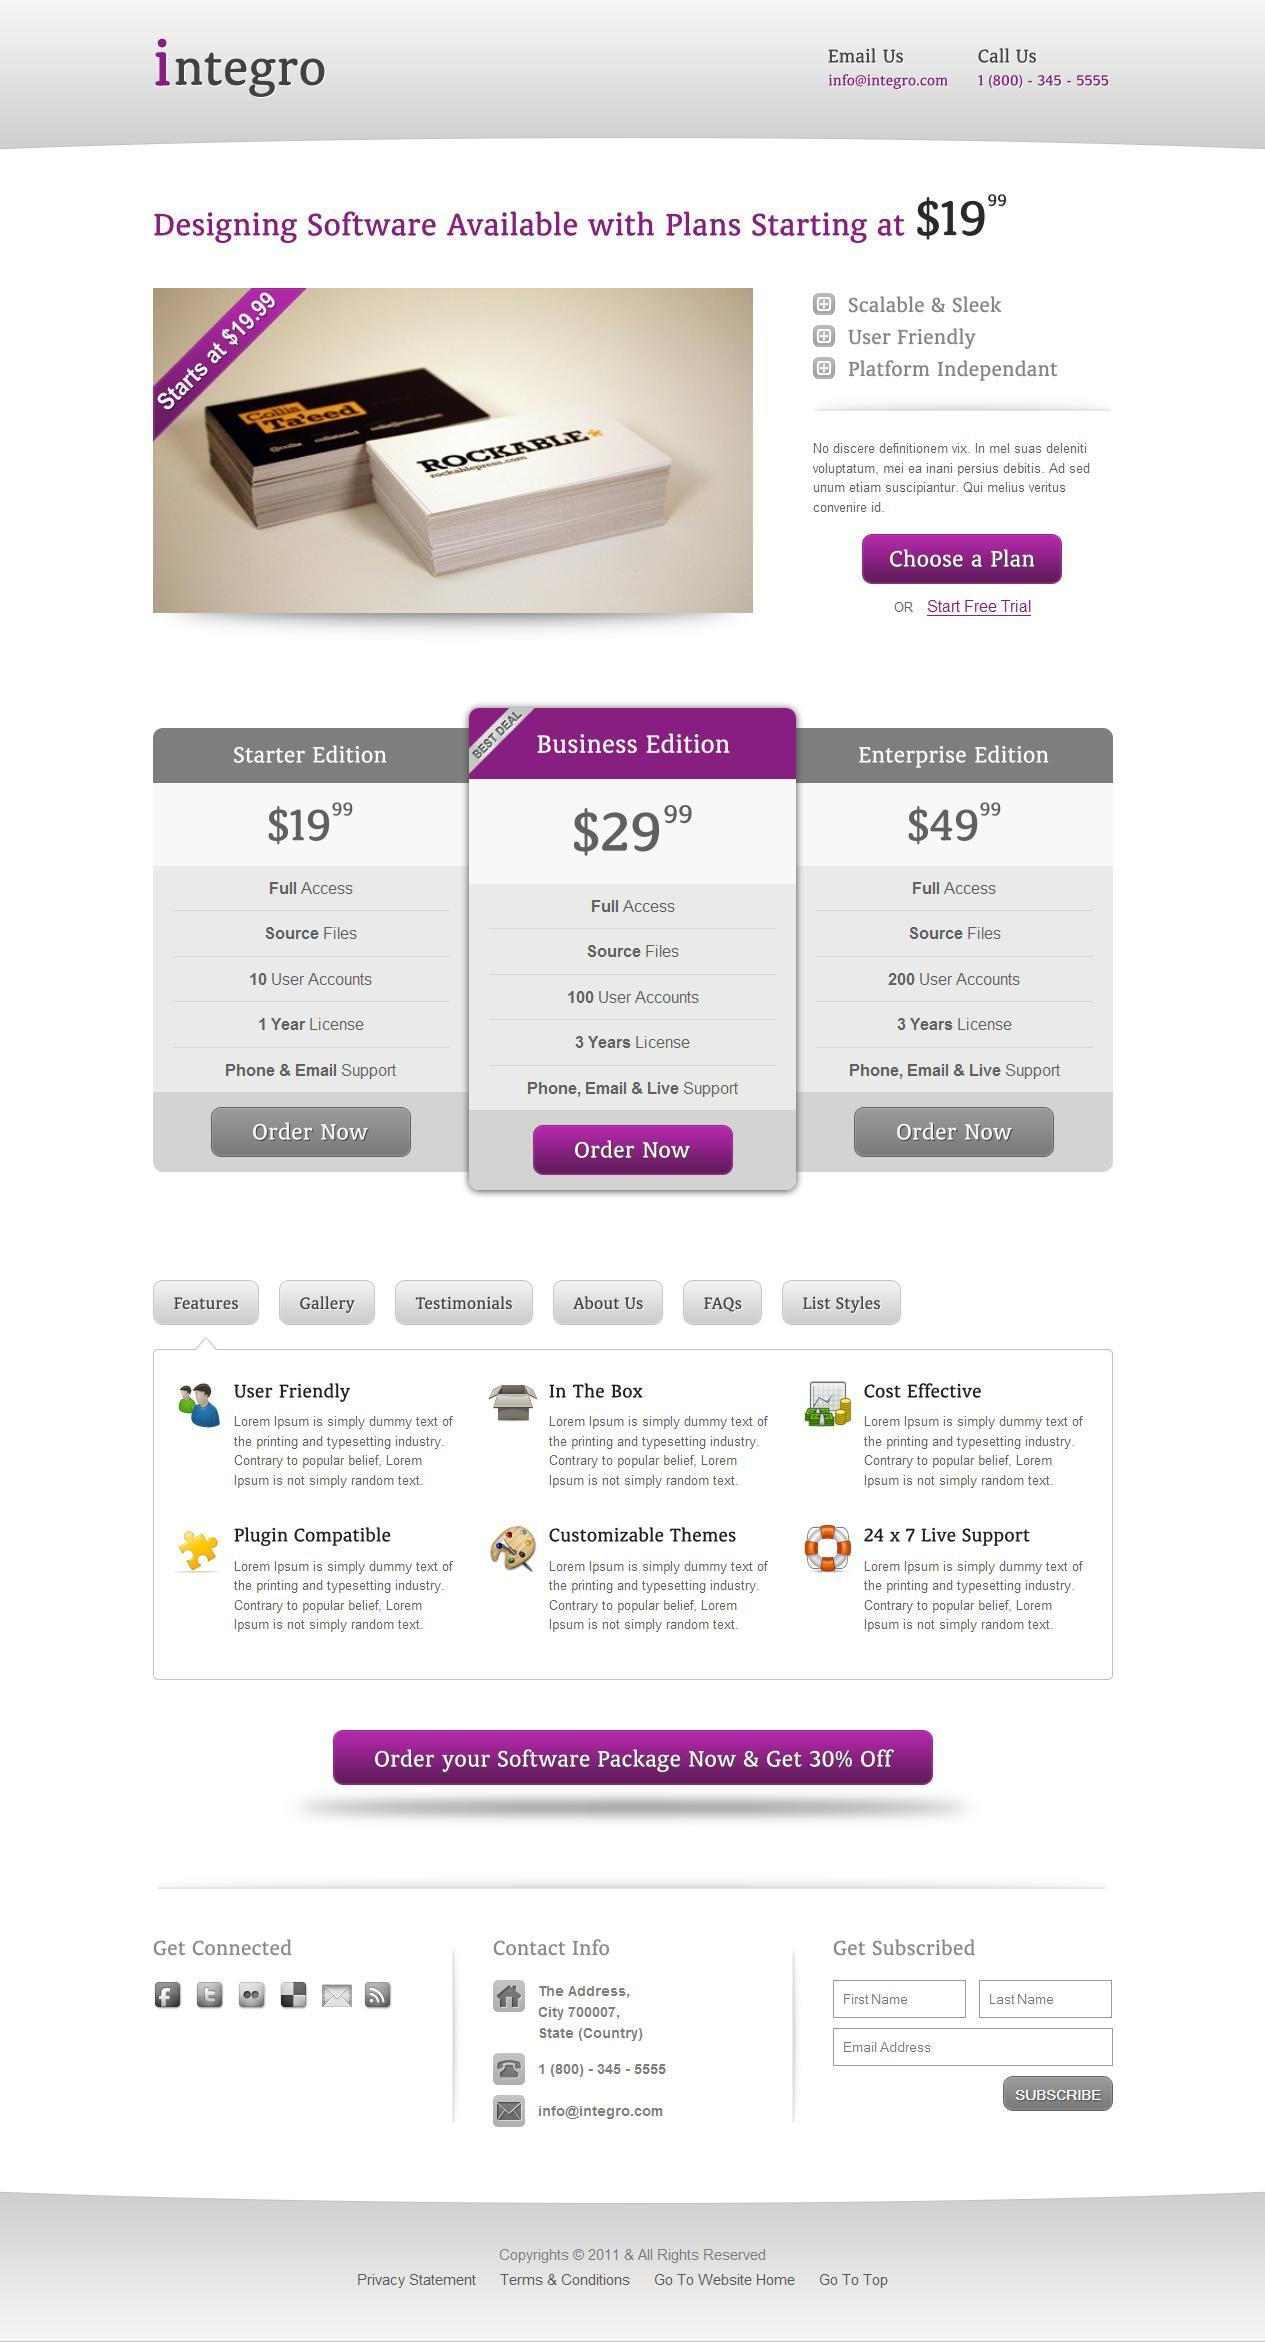 Integro - A Corporate Landing Page